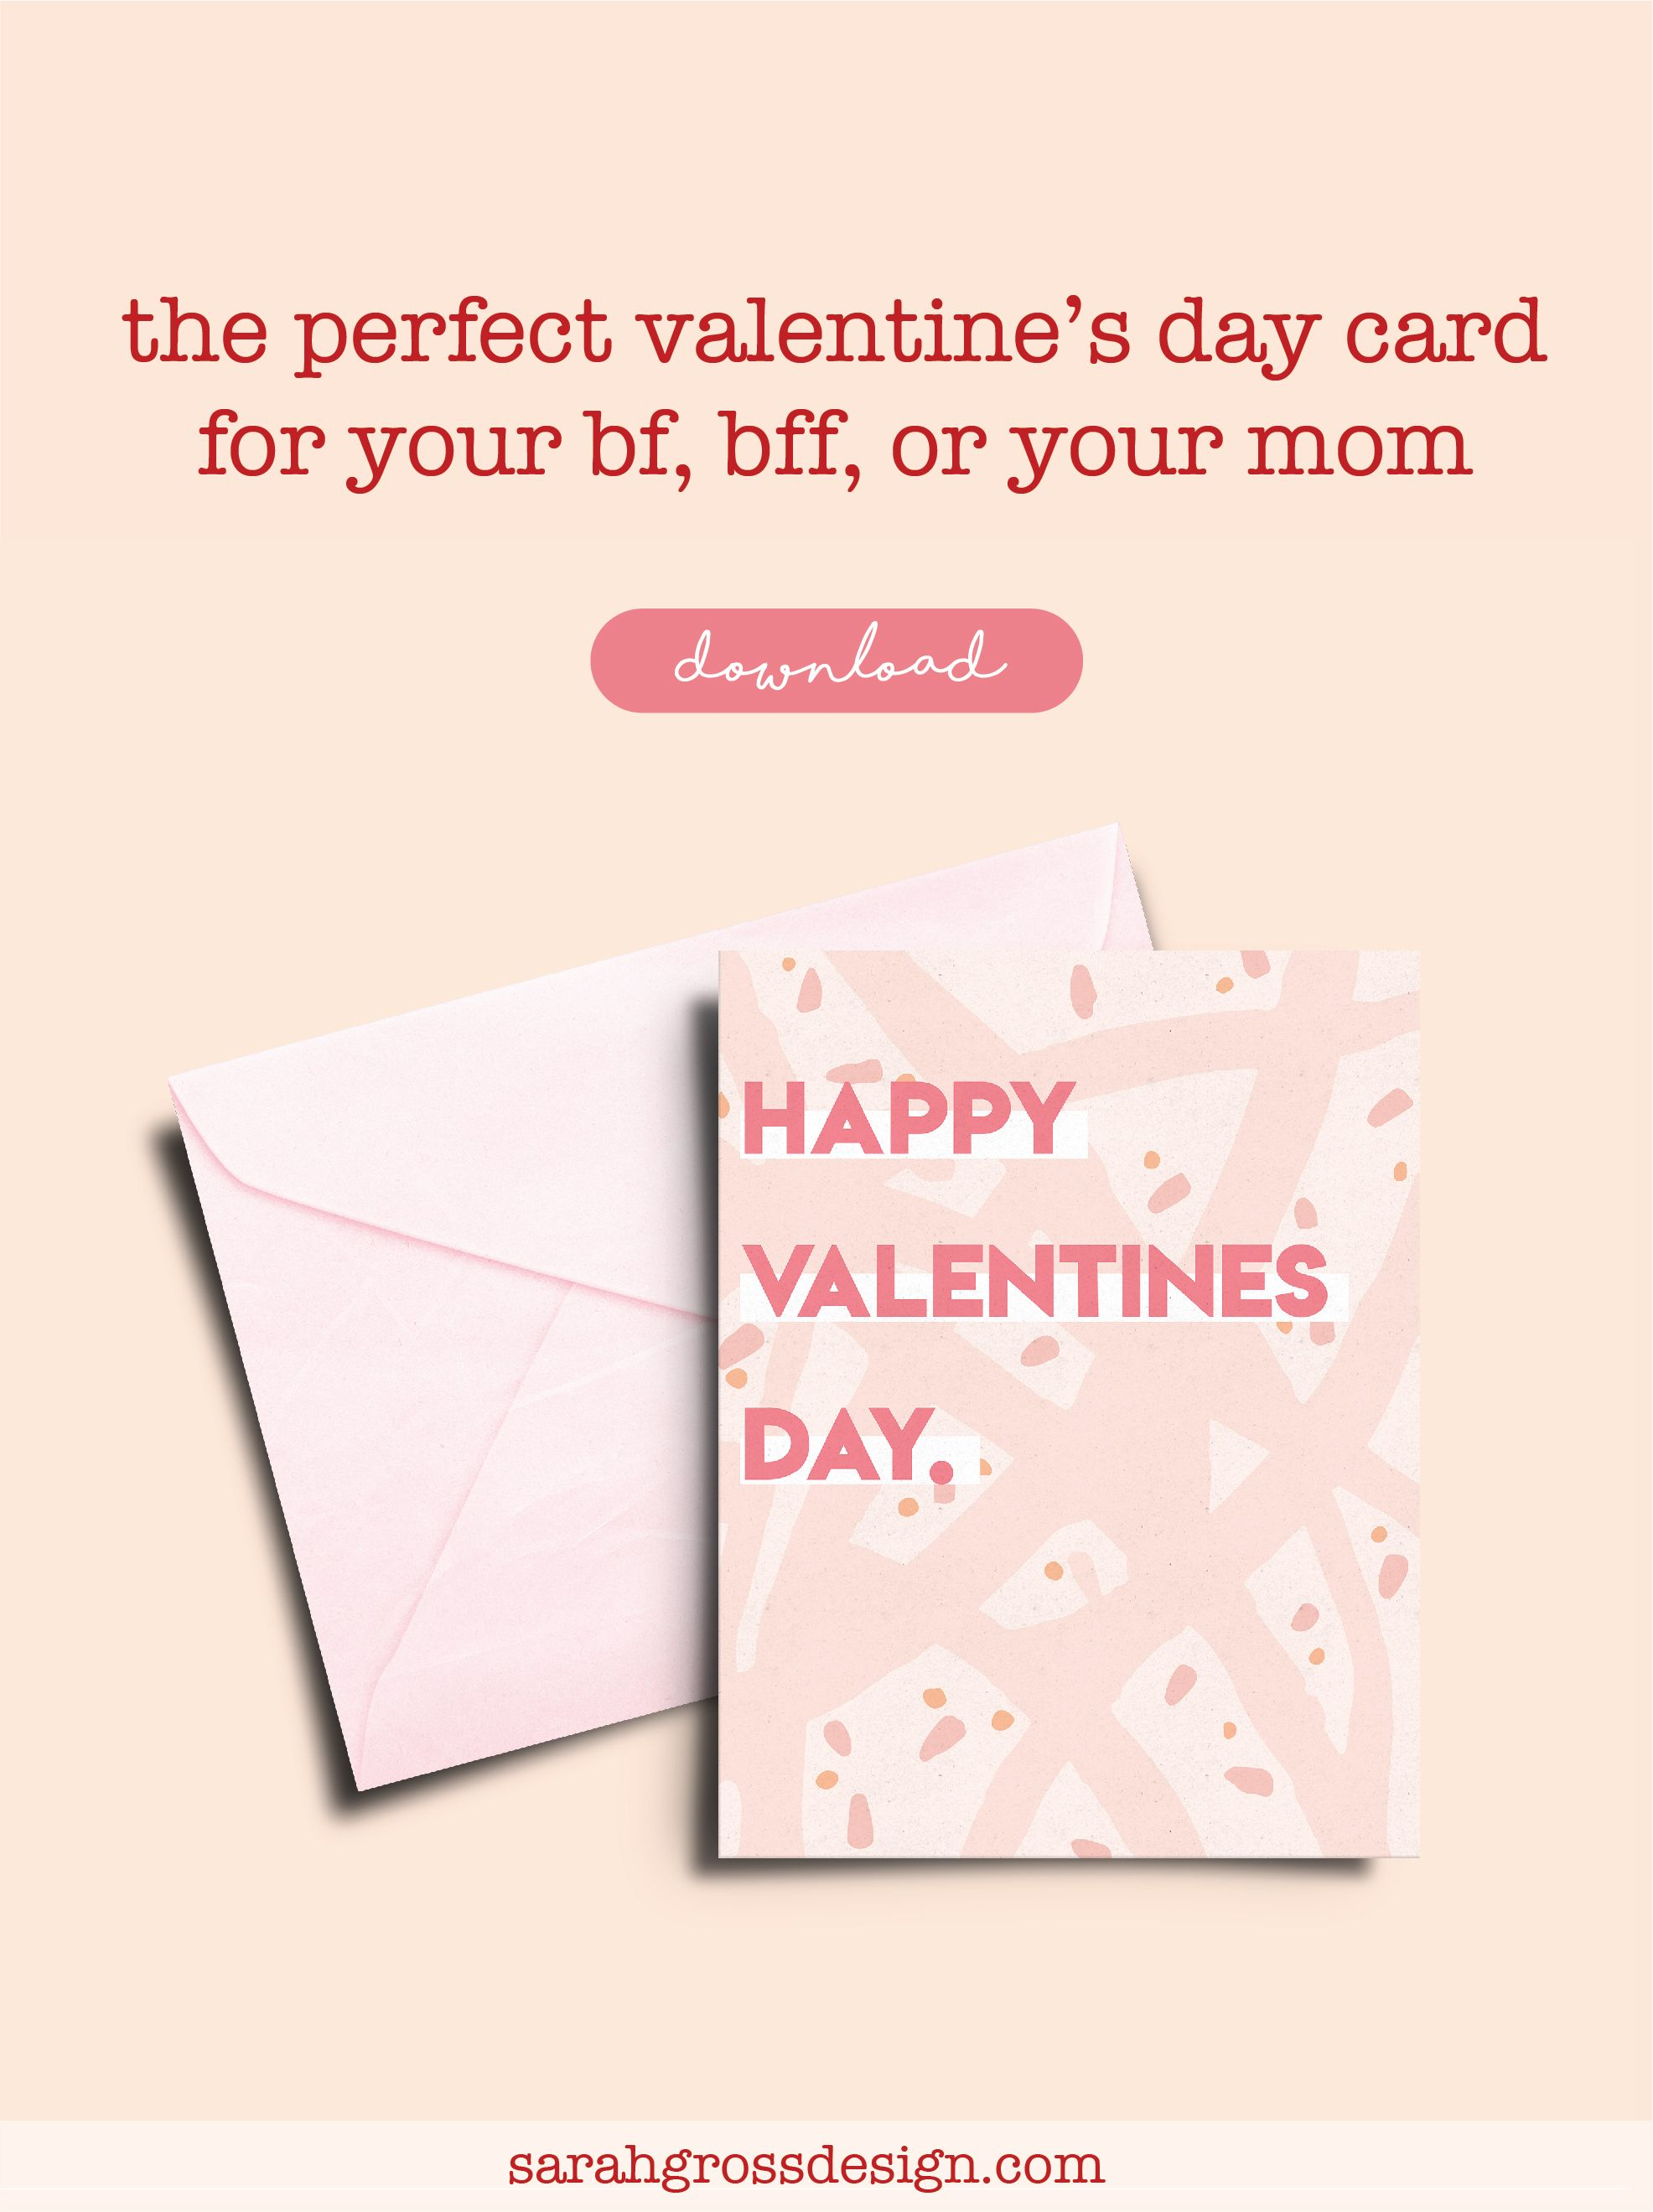 Free Downloadable Printable Valentine S Days Cards For Your Boyfriend Mom Best Frien Printable Valentines Day Cards Valentine Day Cards Valentines Printables